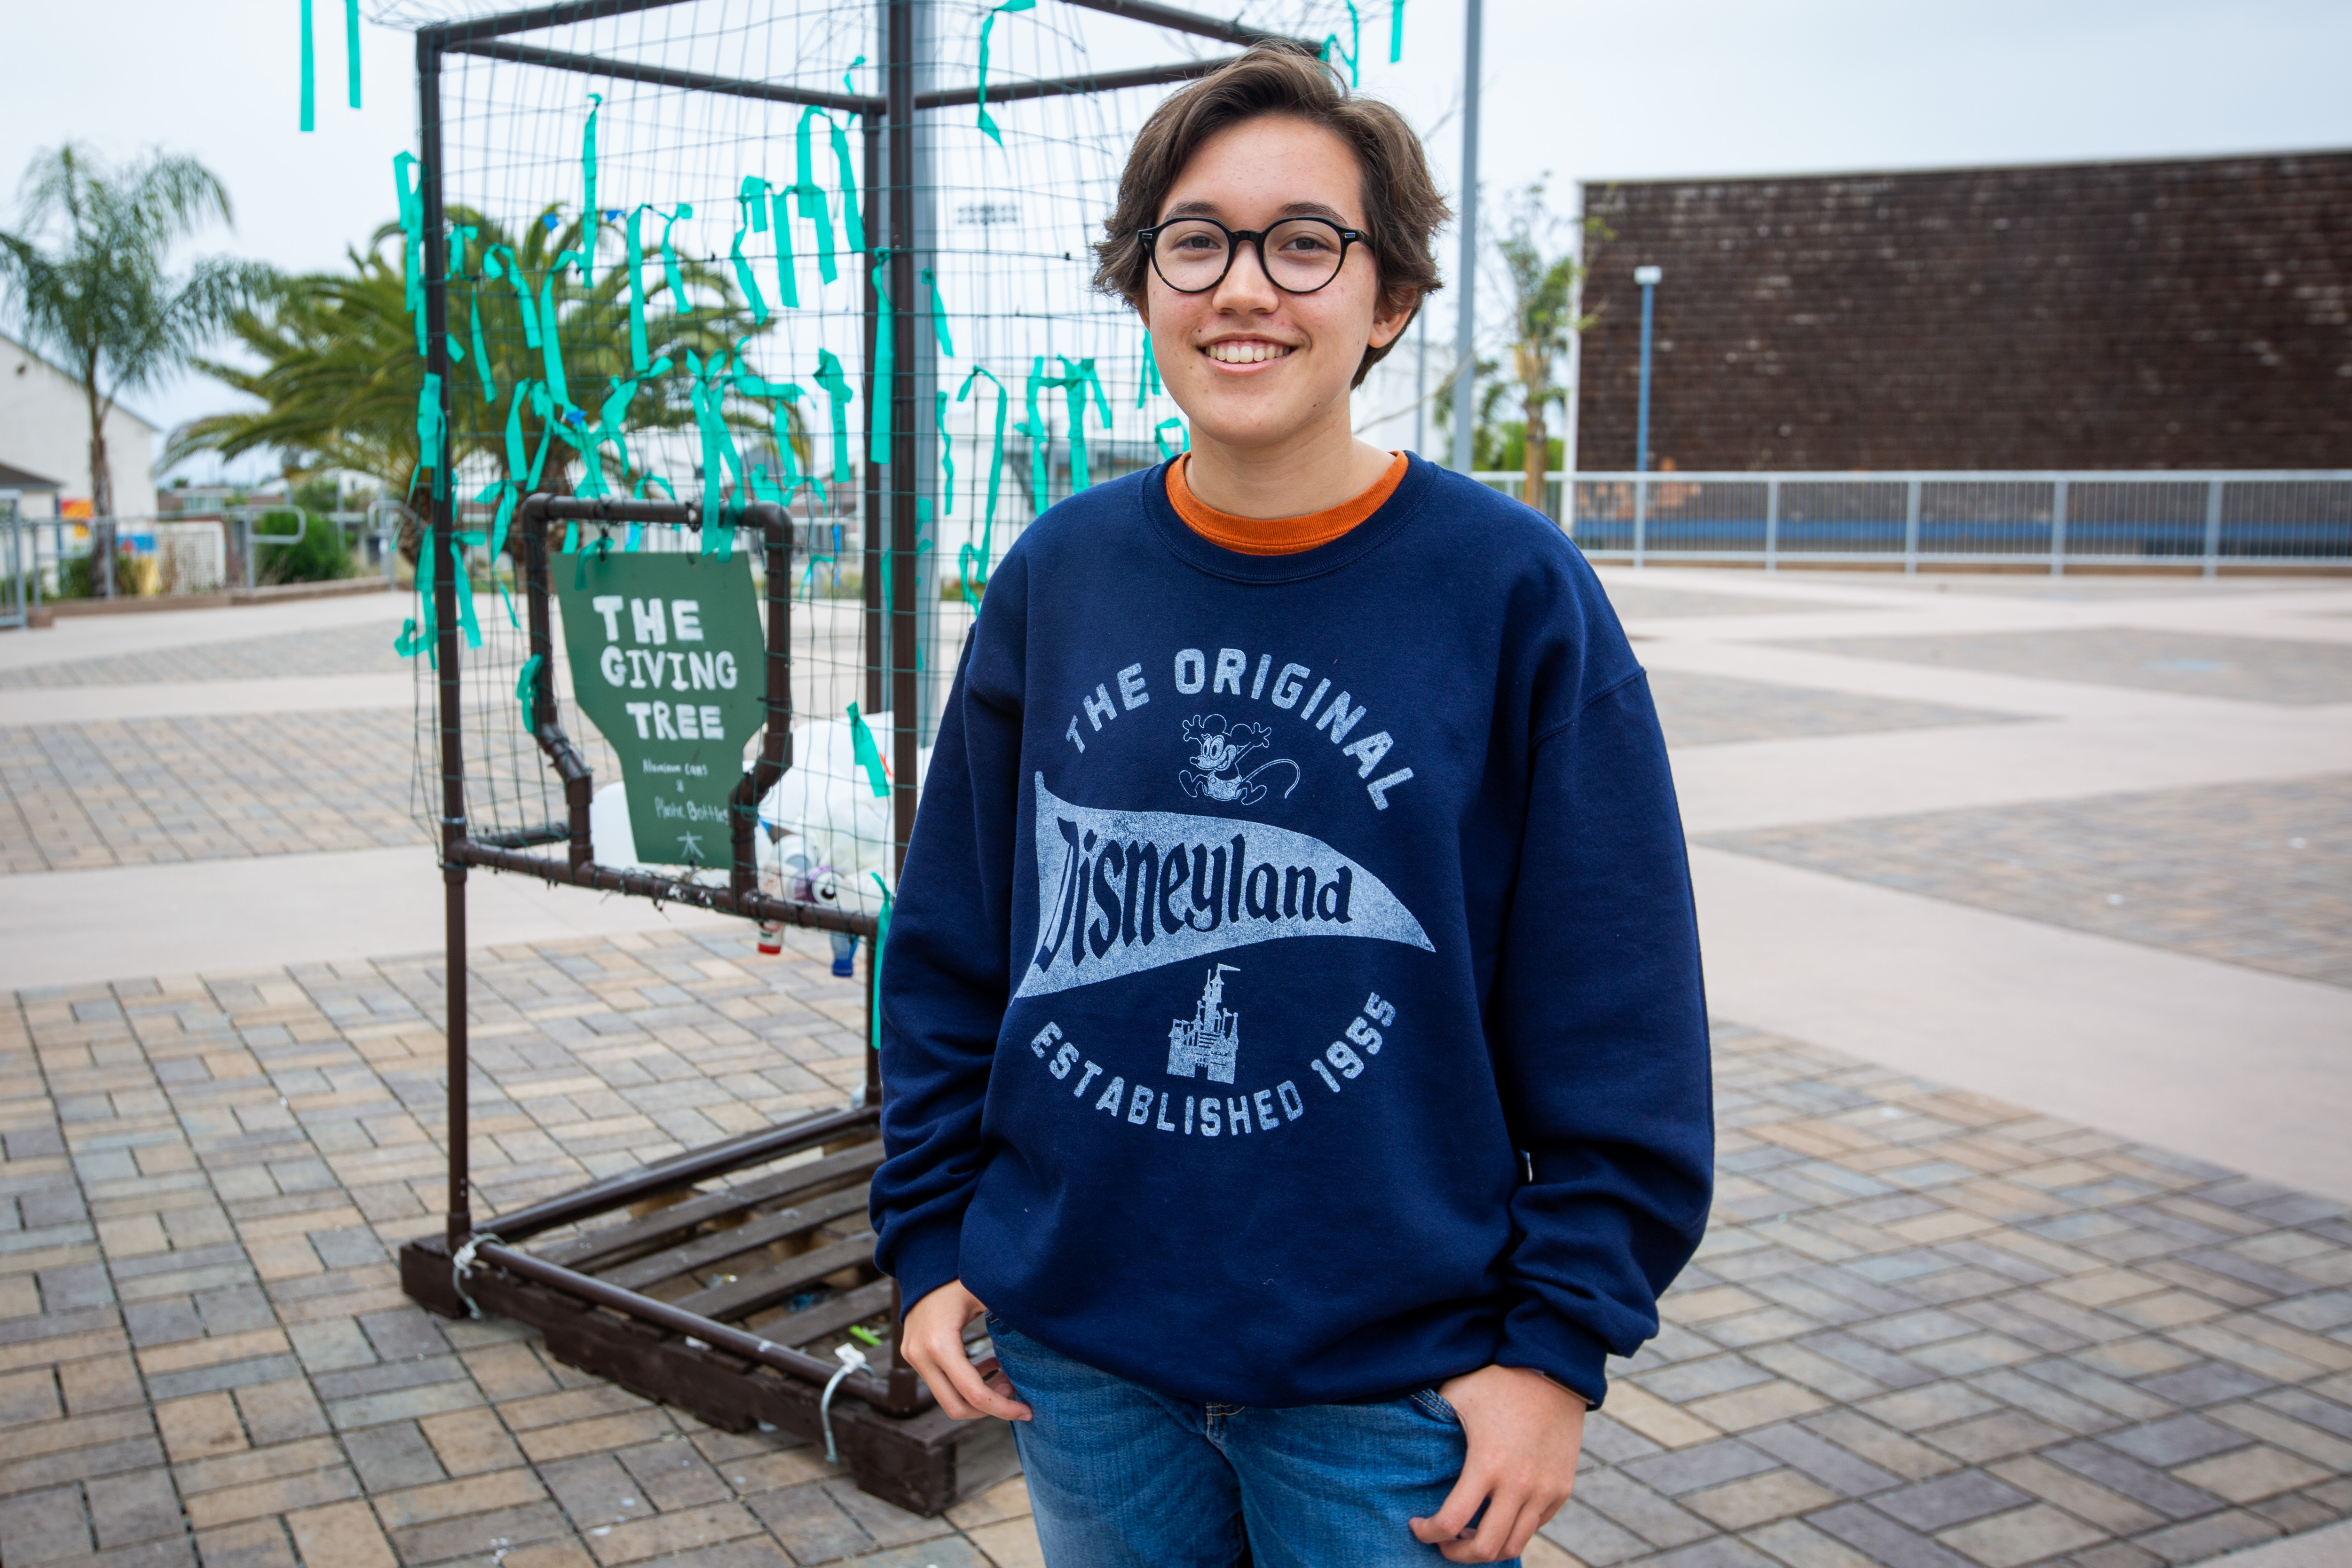 San Dieguito High recycling club set sights on plastic water bottles